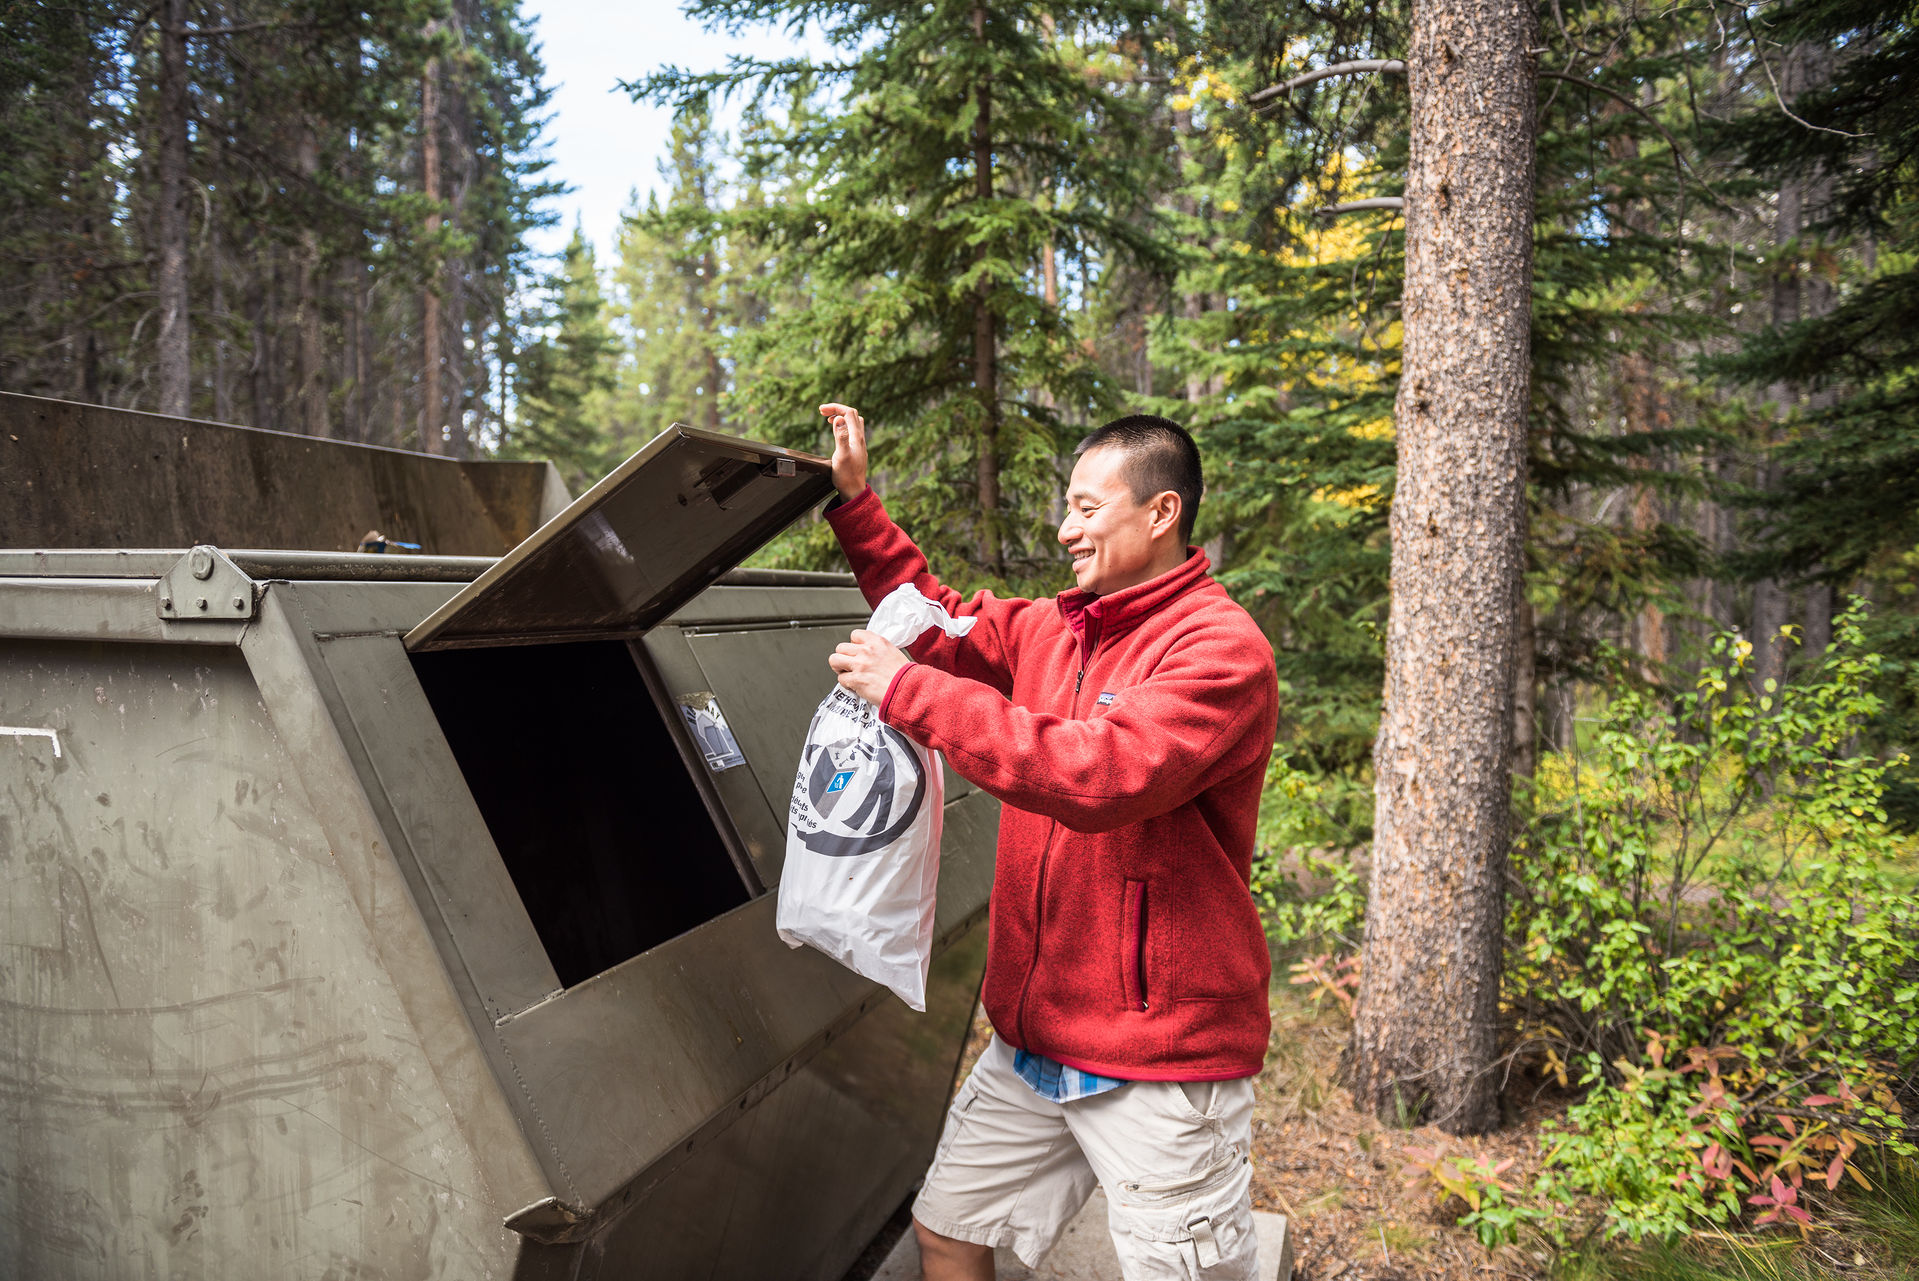 Parks Canada: Keeping the Wild in Wilderness - Leave No Trace on Your Next Outdoor Adventure